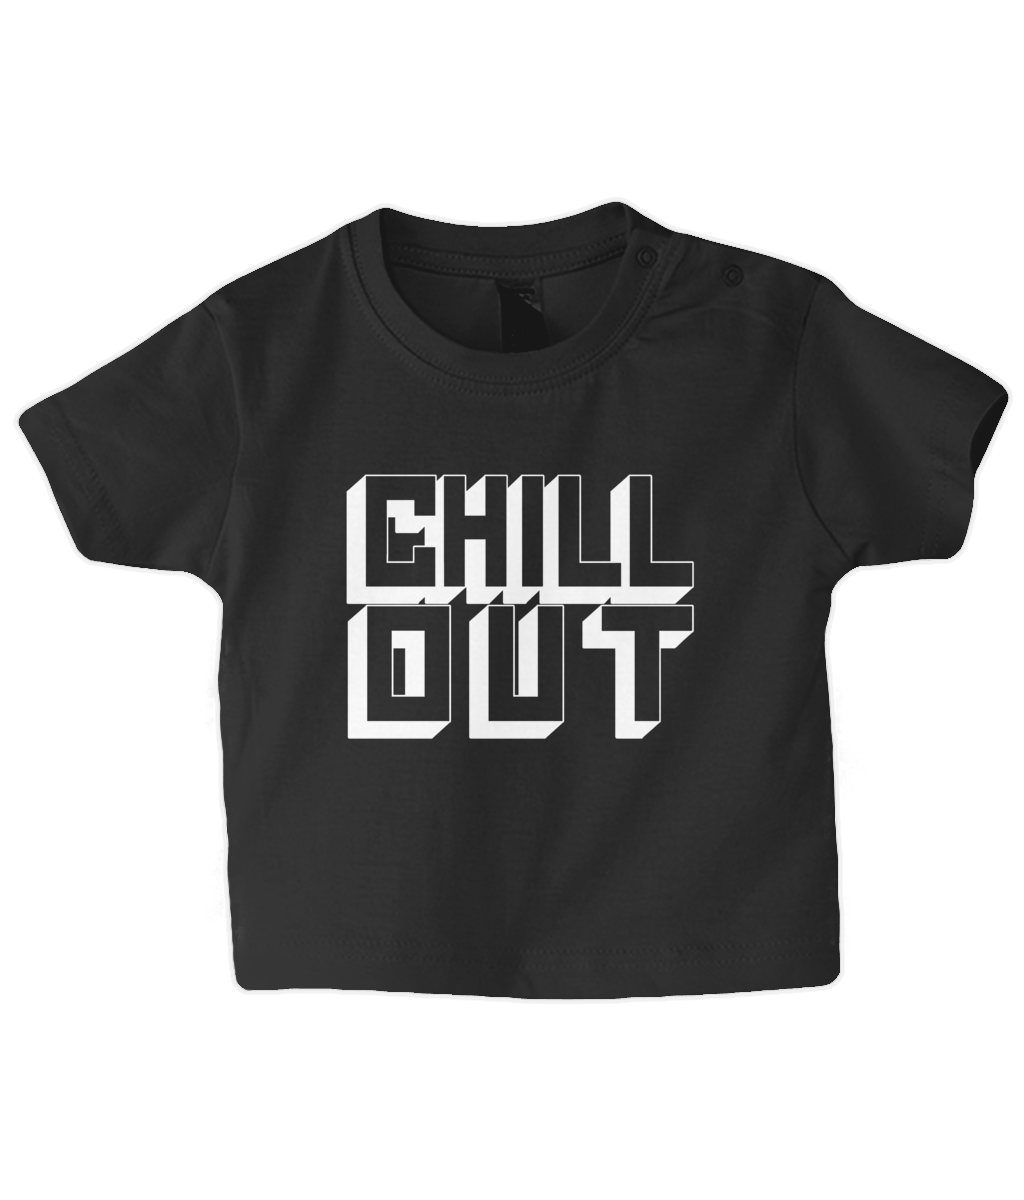 Chill Out Baby T Shirt